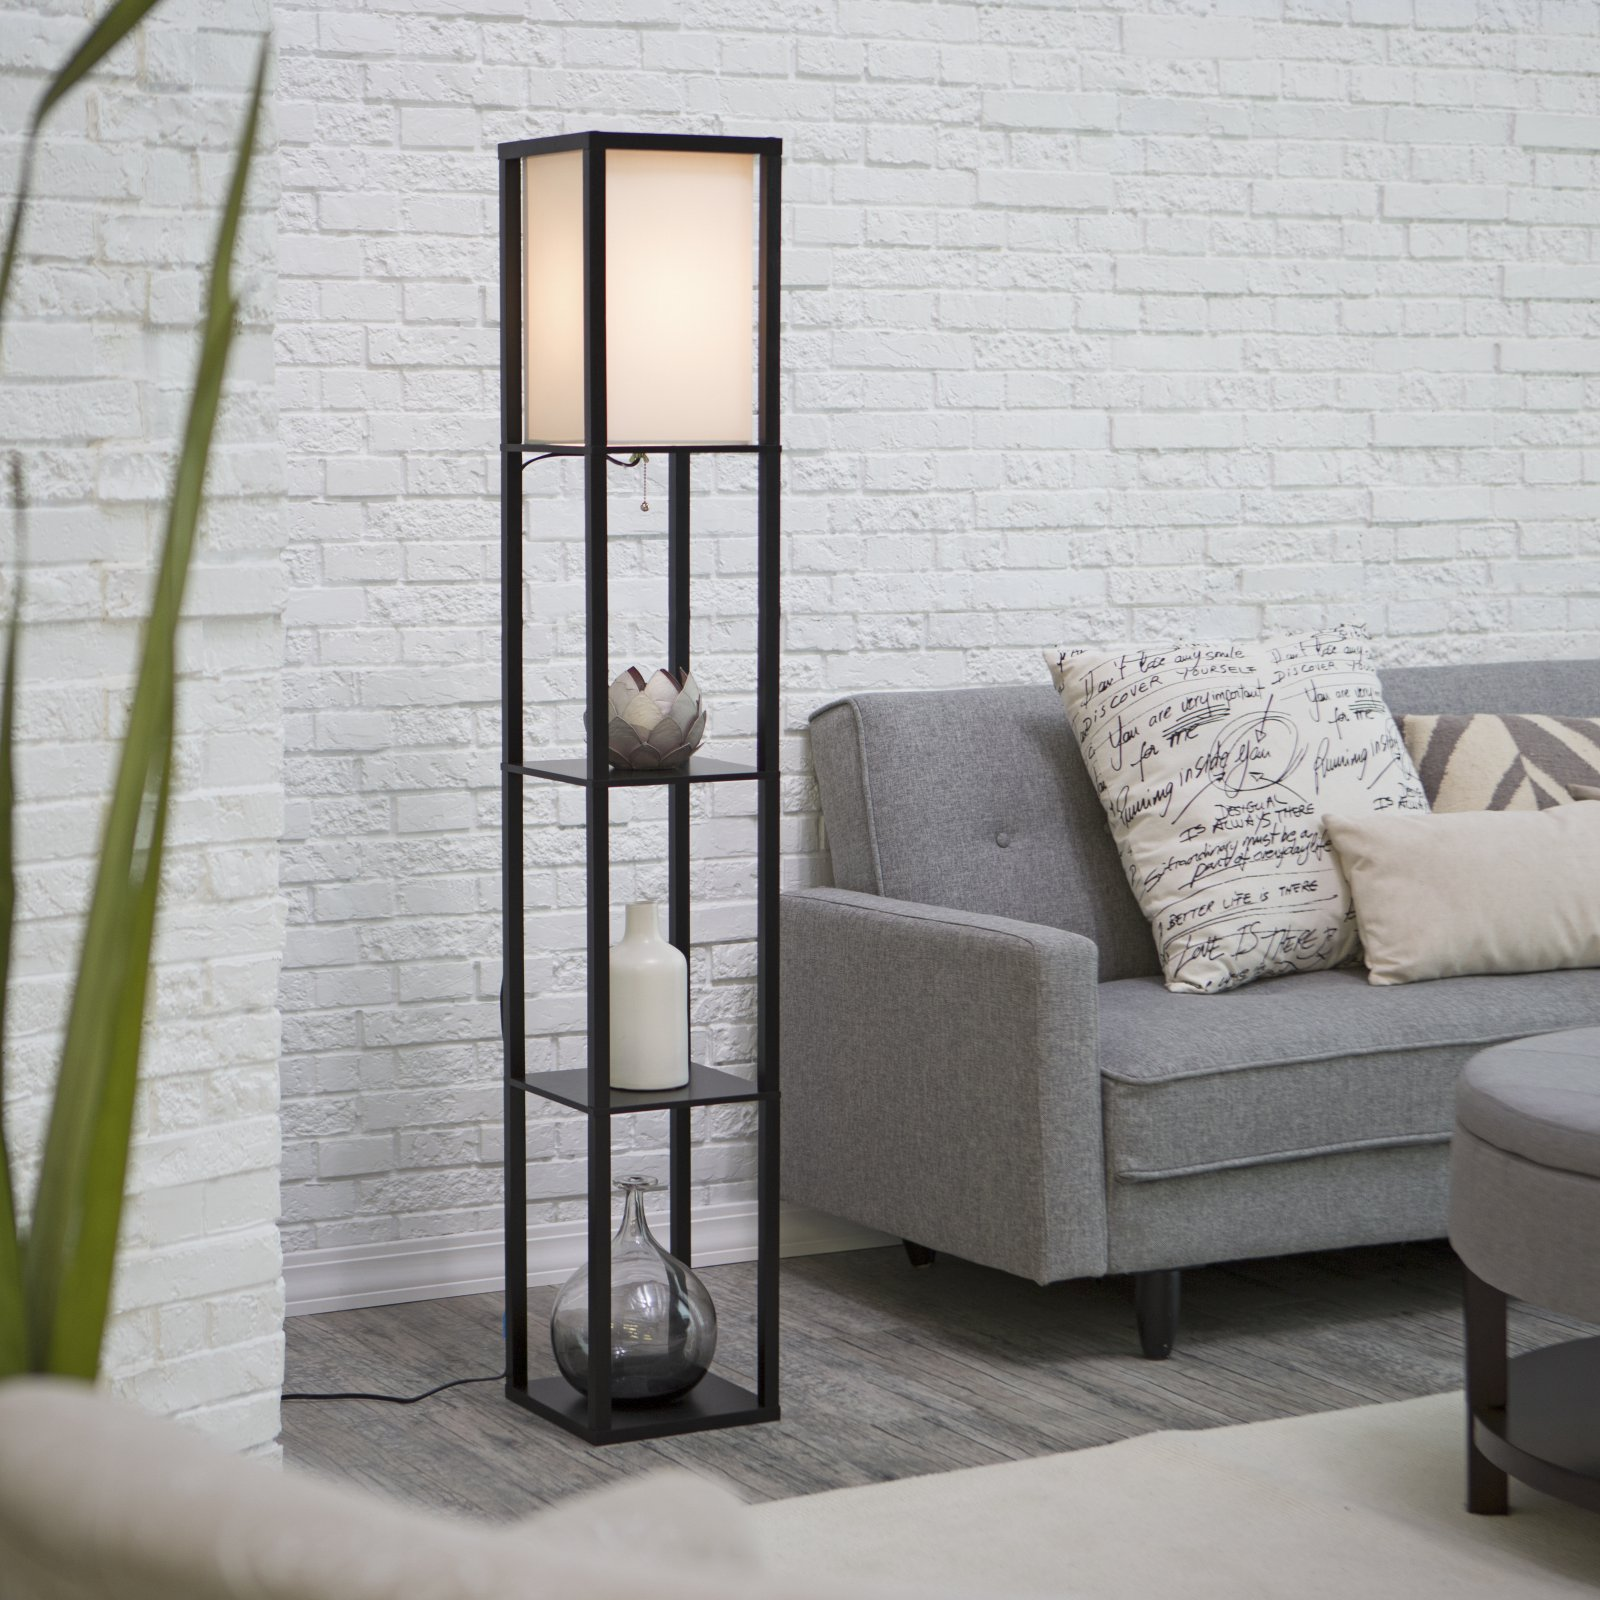 Adesso Lighting 3138-01 Wright Etagere Floor Lamp